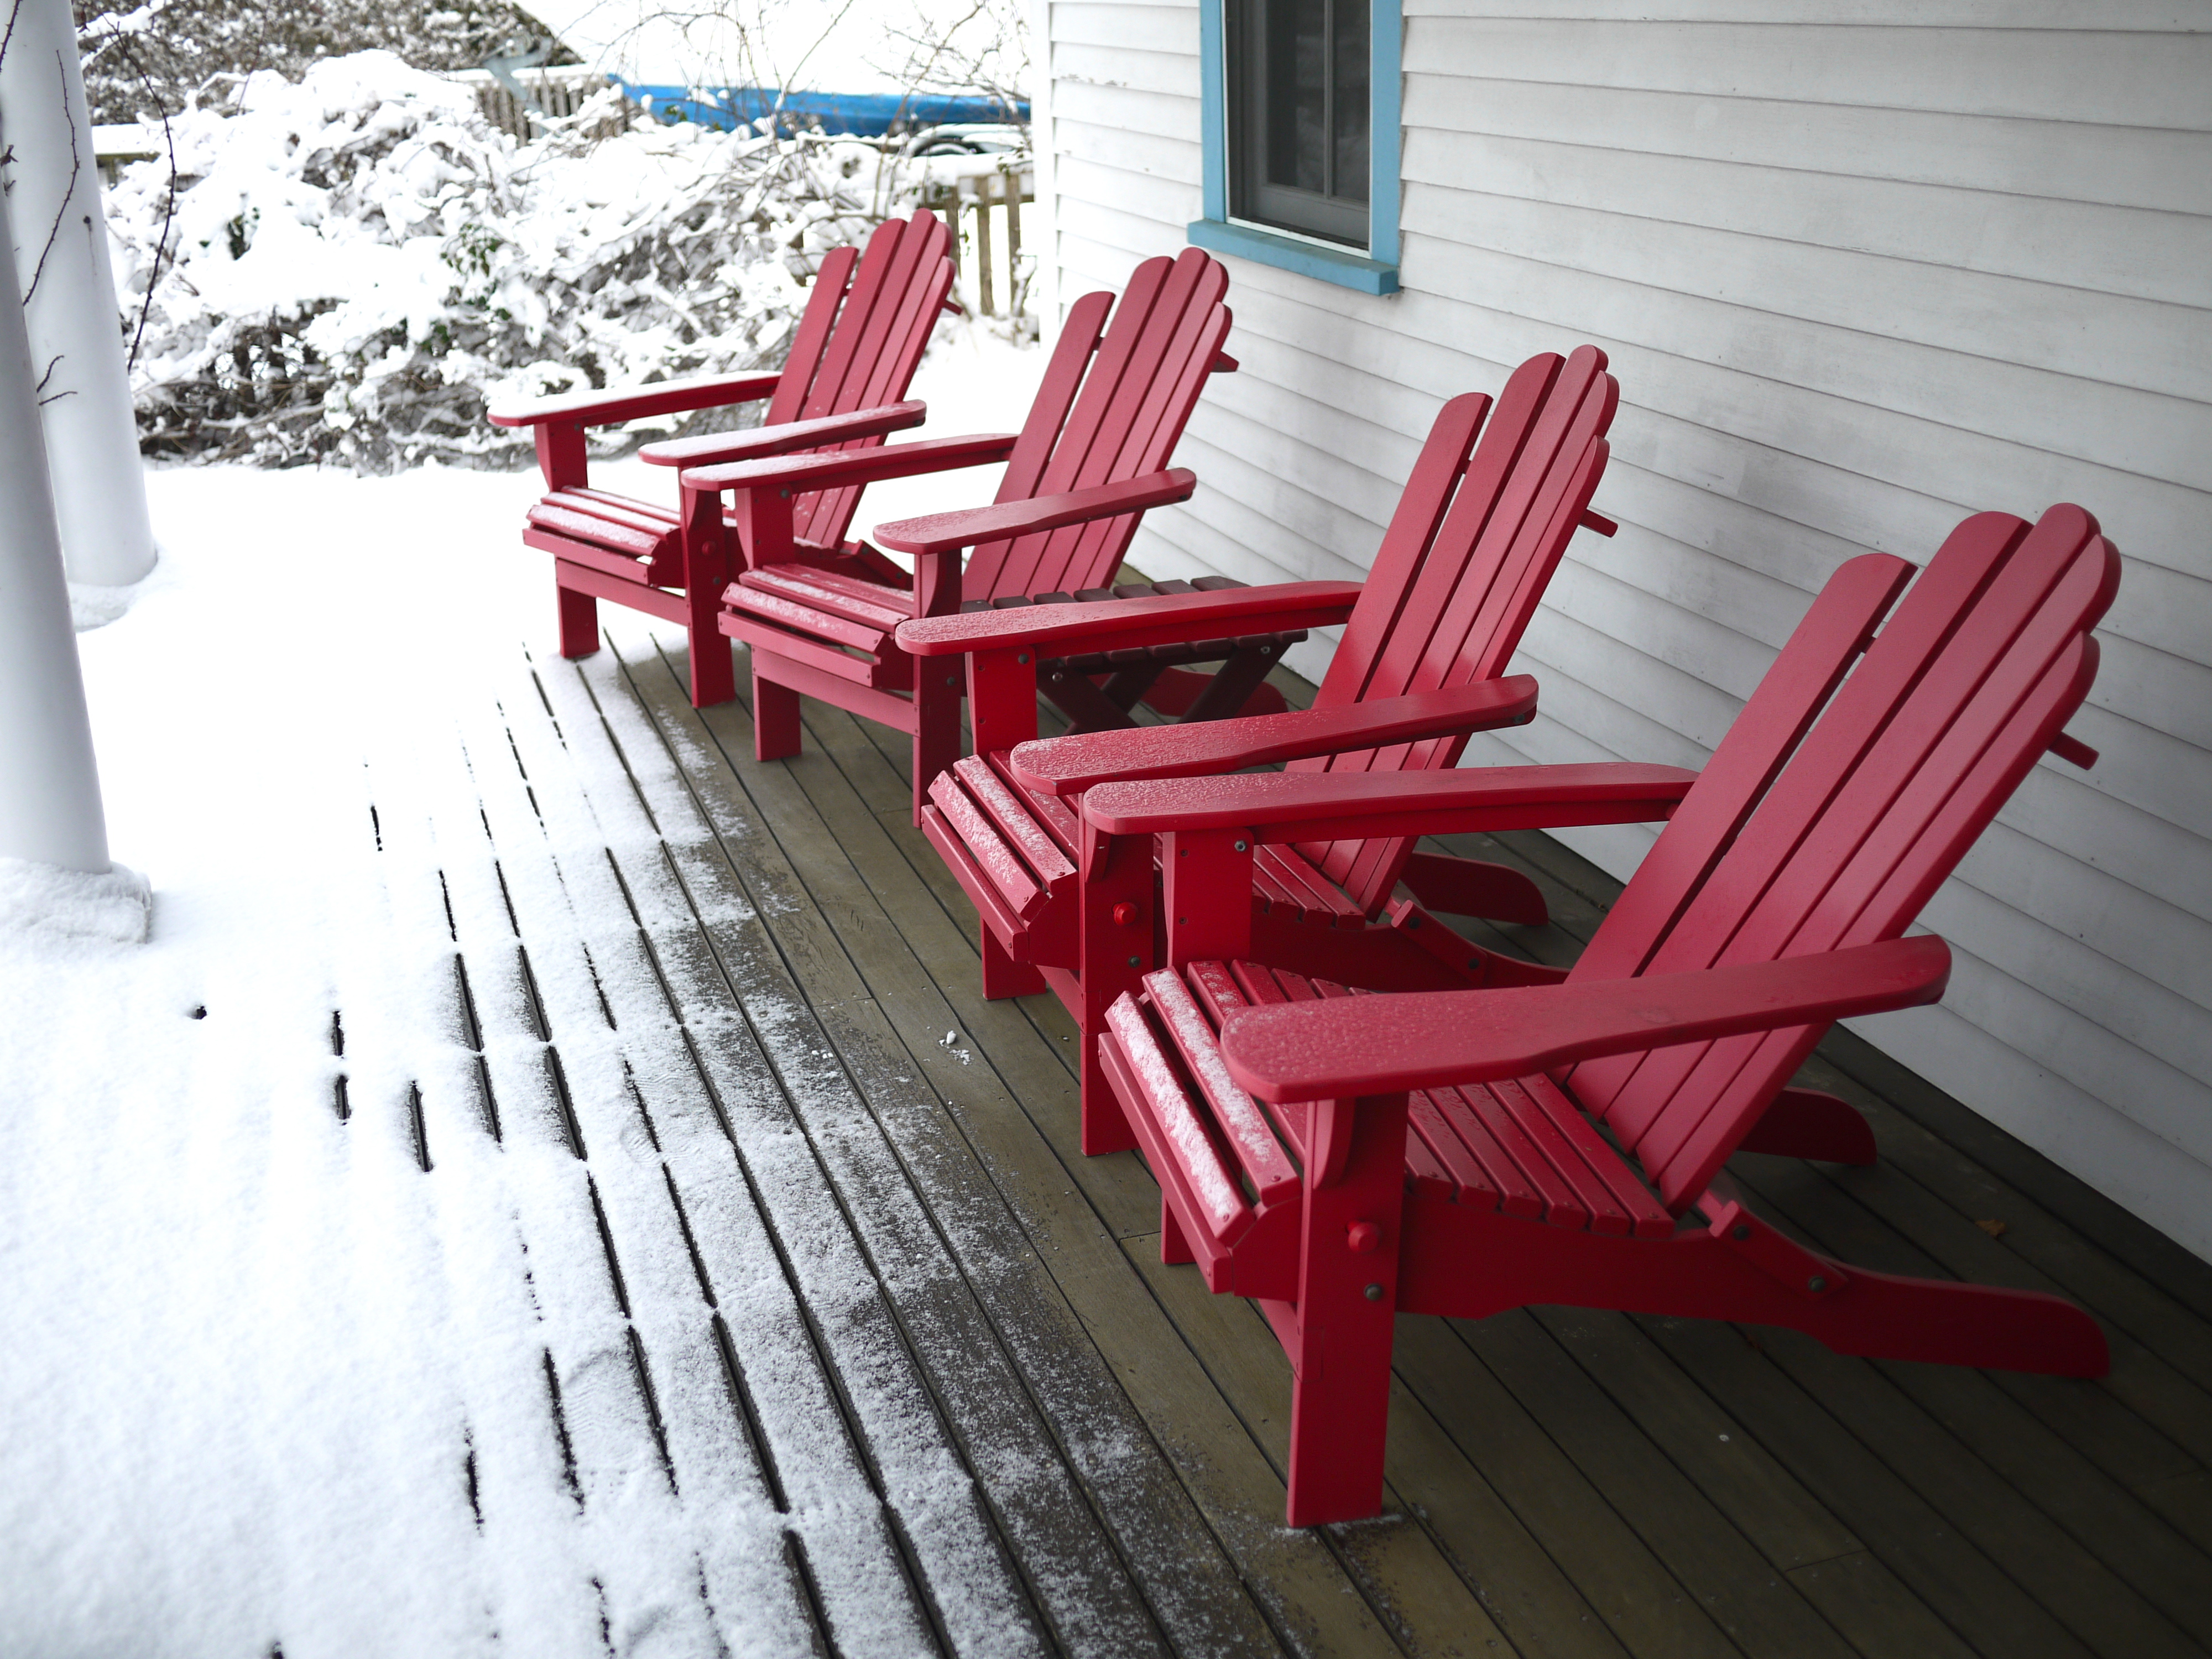 Woods Hole porch in winter